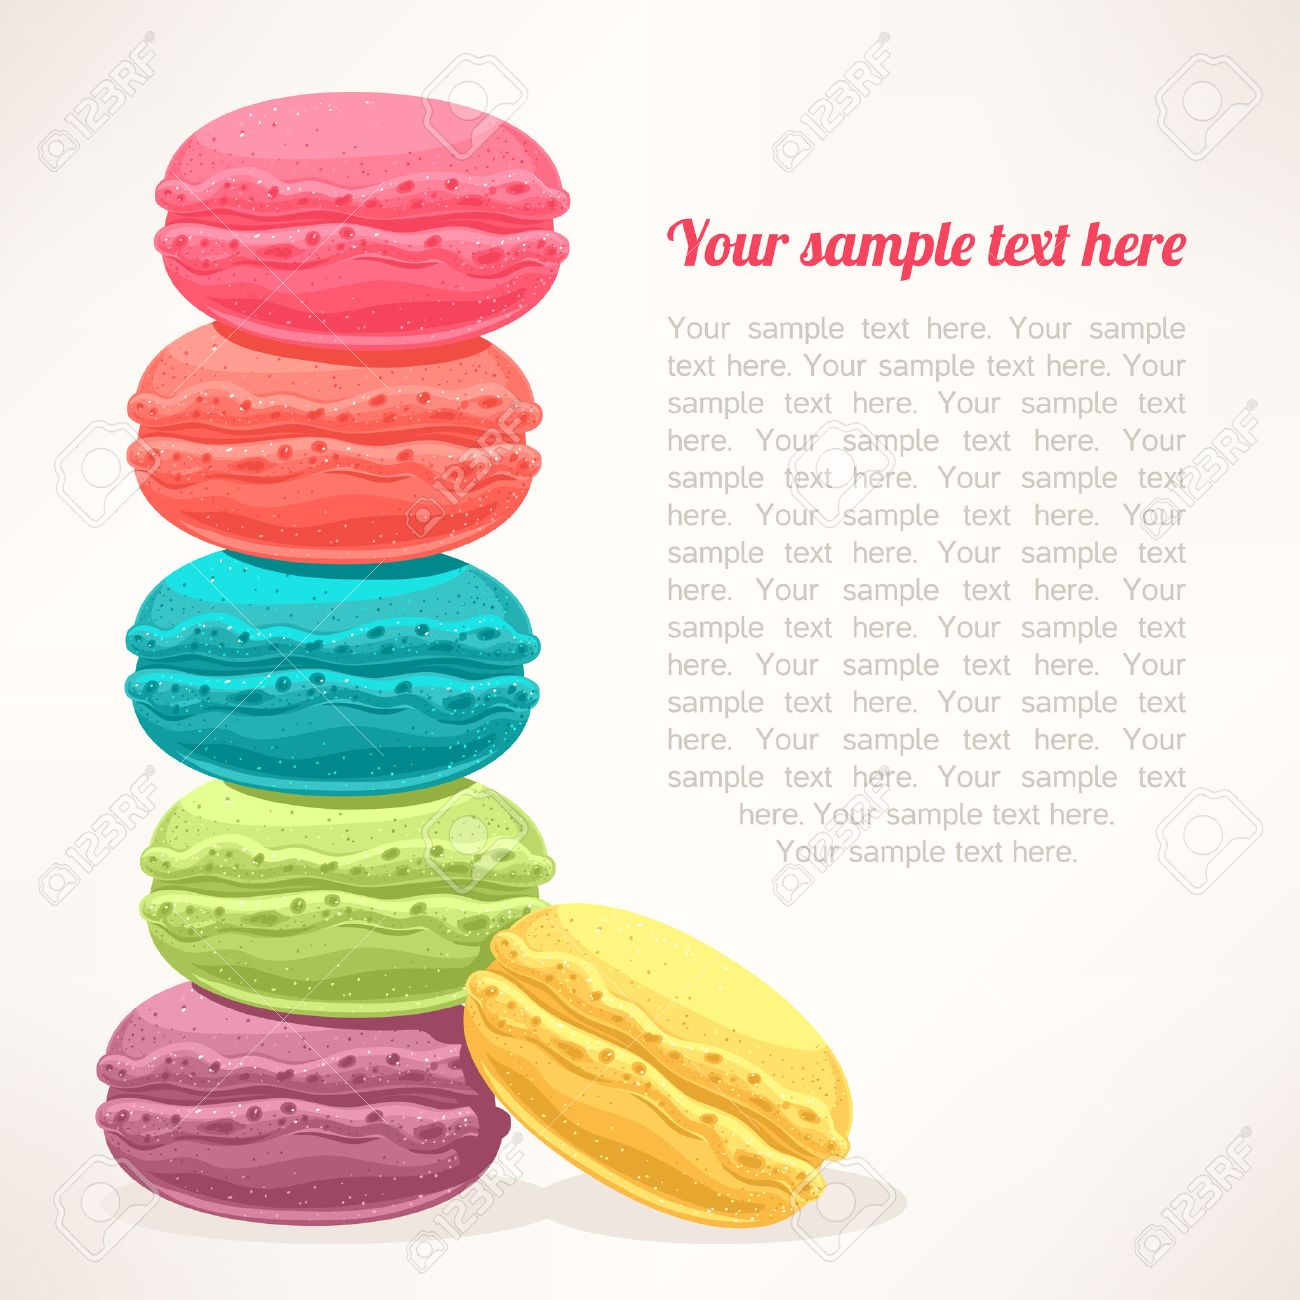 cute background with a pile of colored macarons and place for text - 24598686